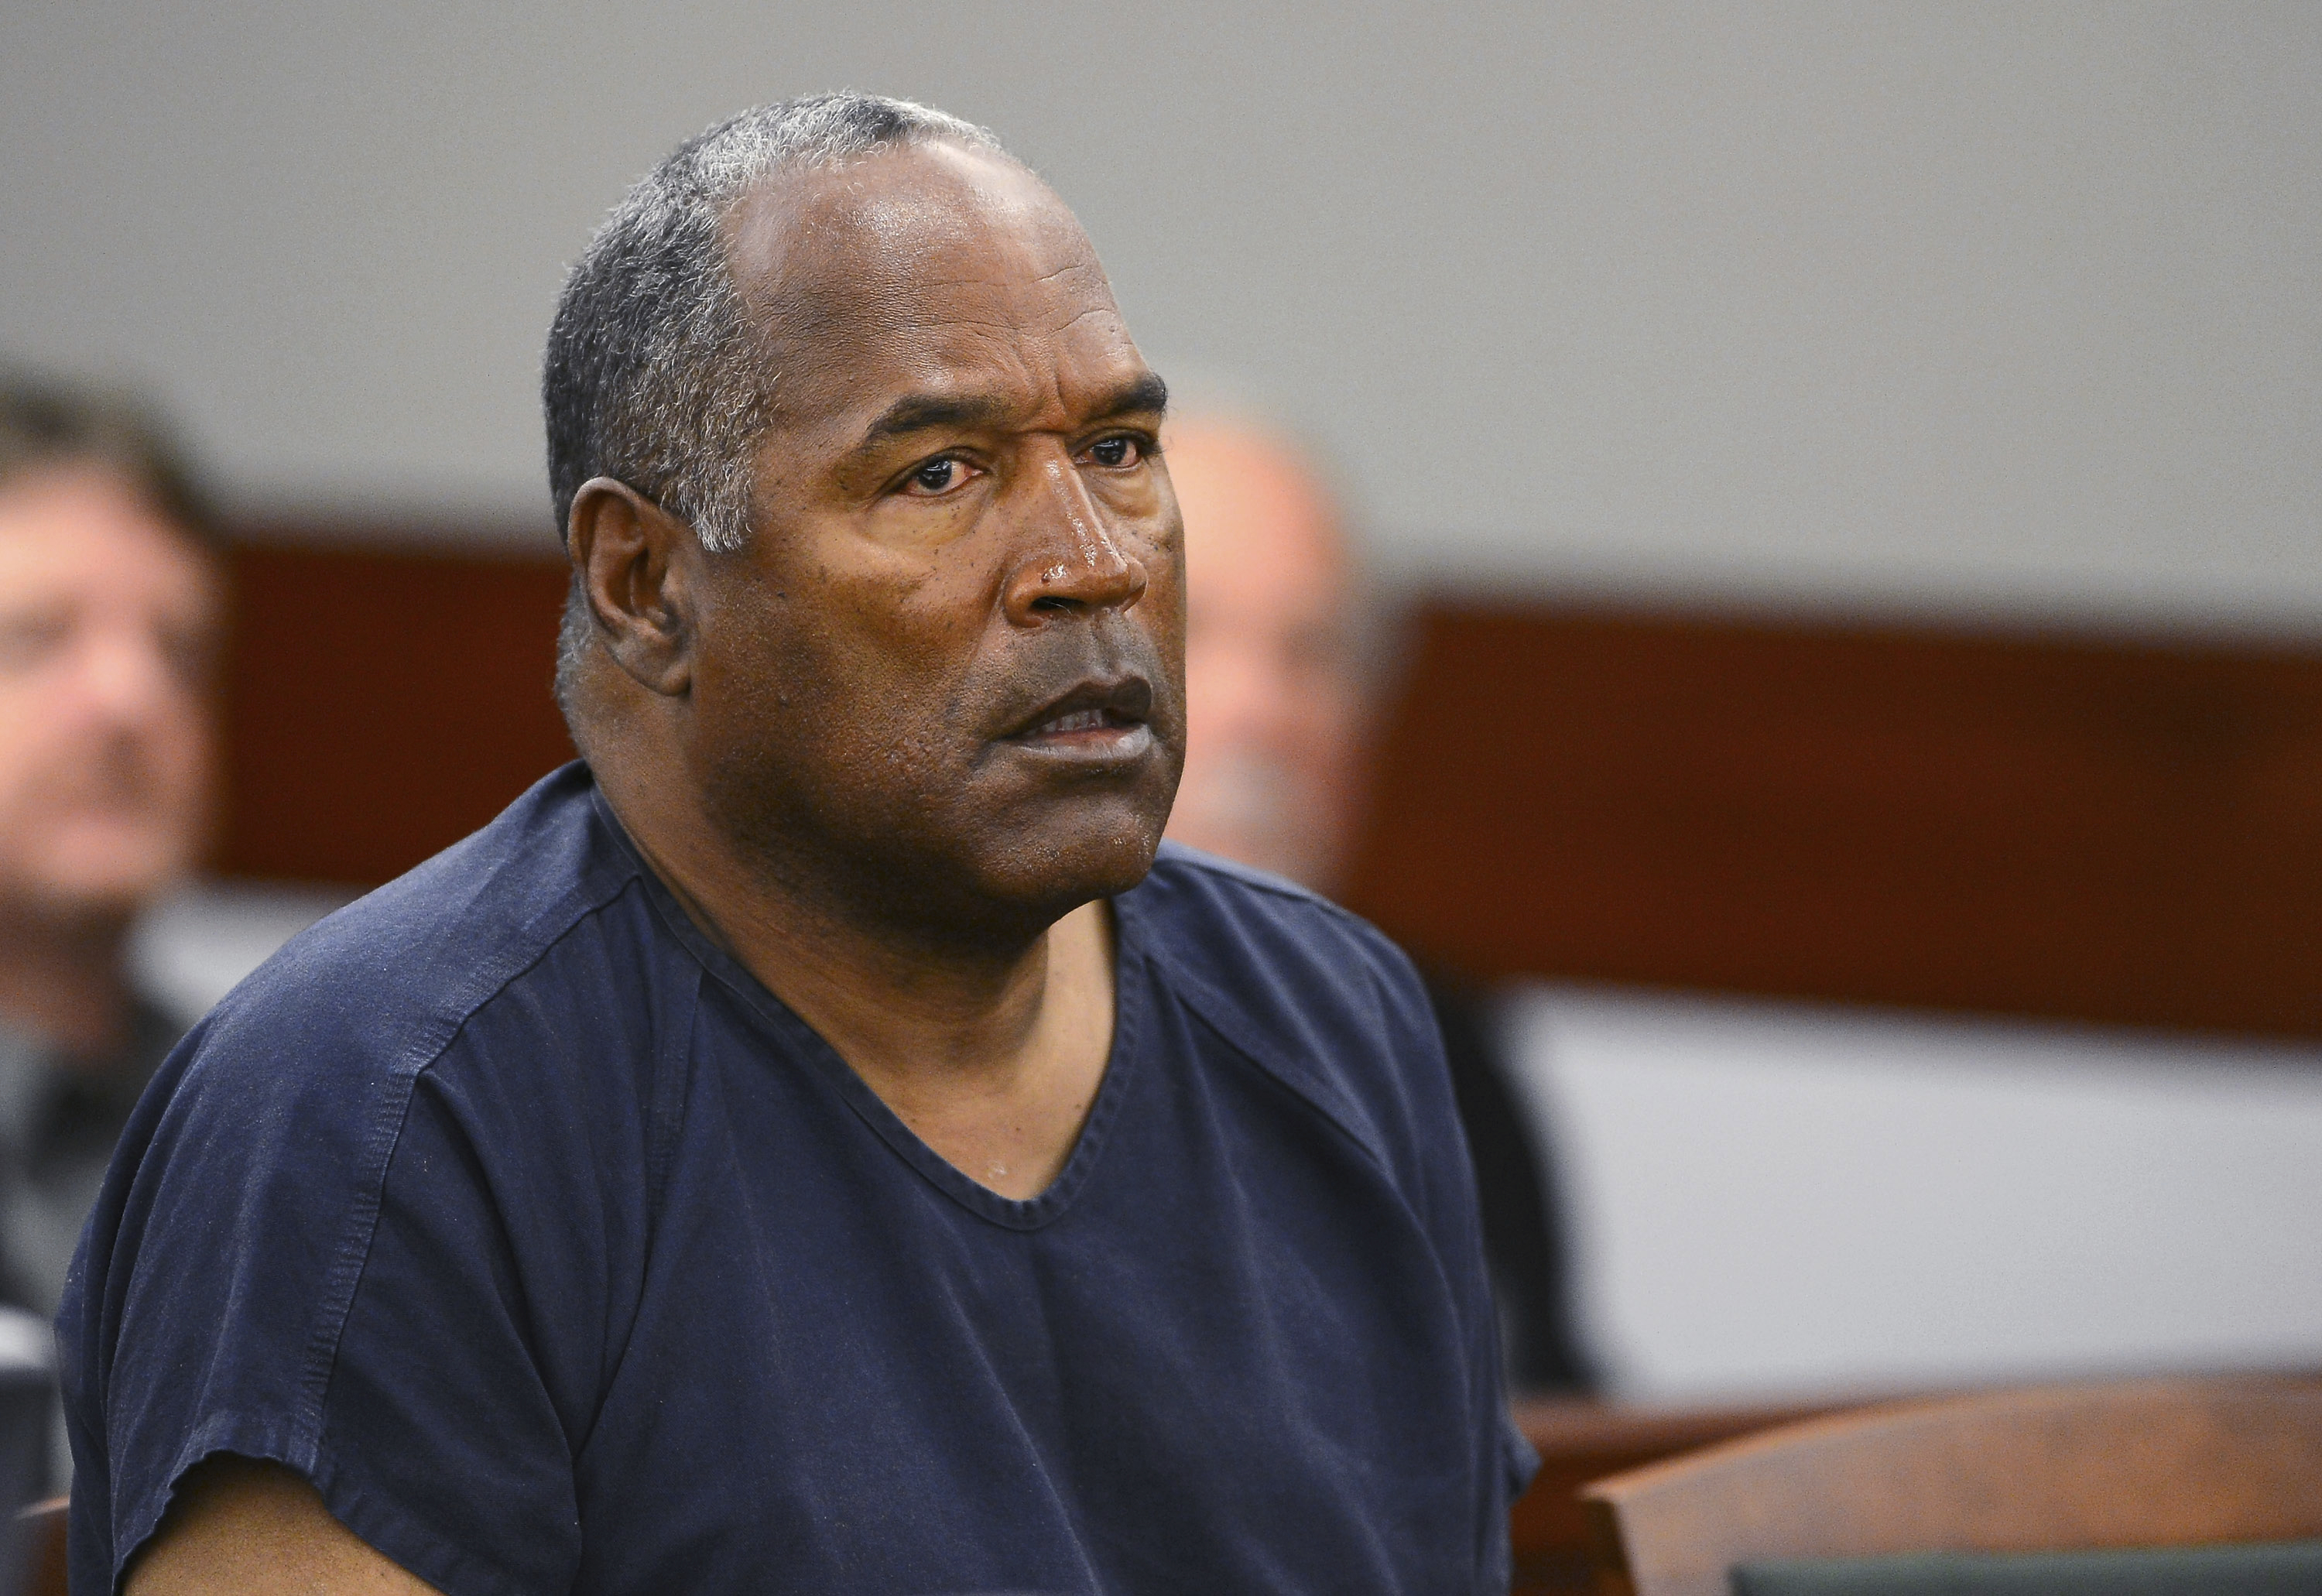 FILE - In this May 14, 2013, file photo, O.J. Simpson appears at an evidentiary hearing in Clark County District Court in Las Vegas. A Nevada prison official said early Sunday, Oct. 1, 2017, O.J. Simpson, the former football legend and Hollywood star, has been released from a Nevada prison in Lovelock after serving nine years for armed robbery. (Ethan Miller via AP, Pool, File)